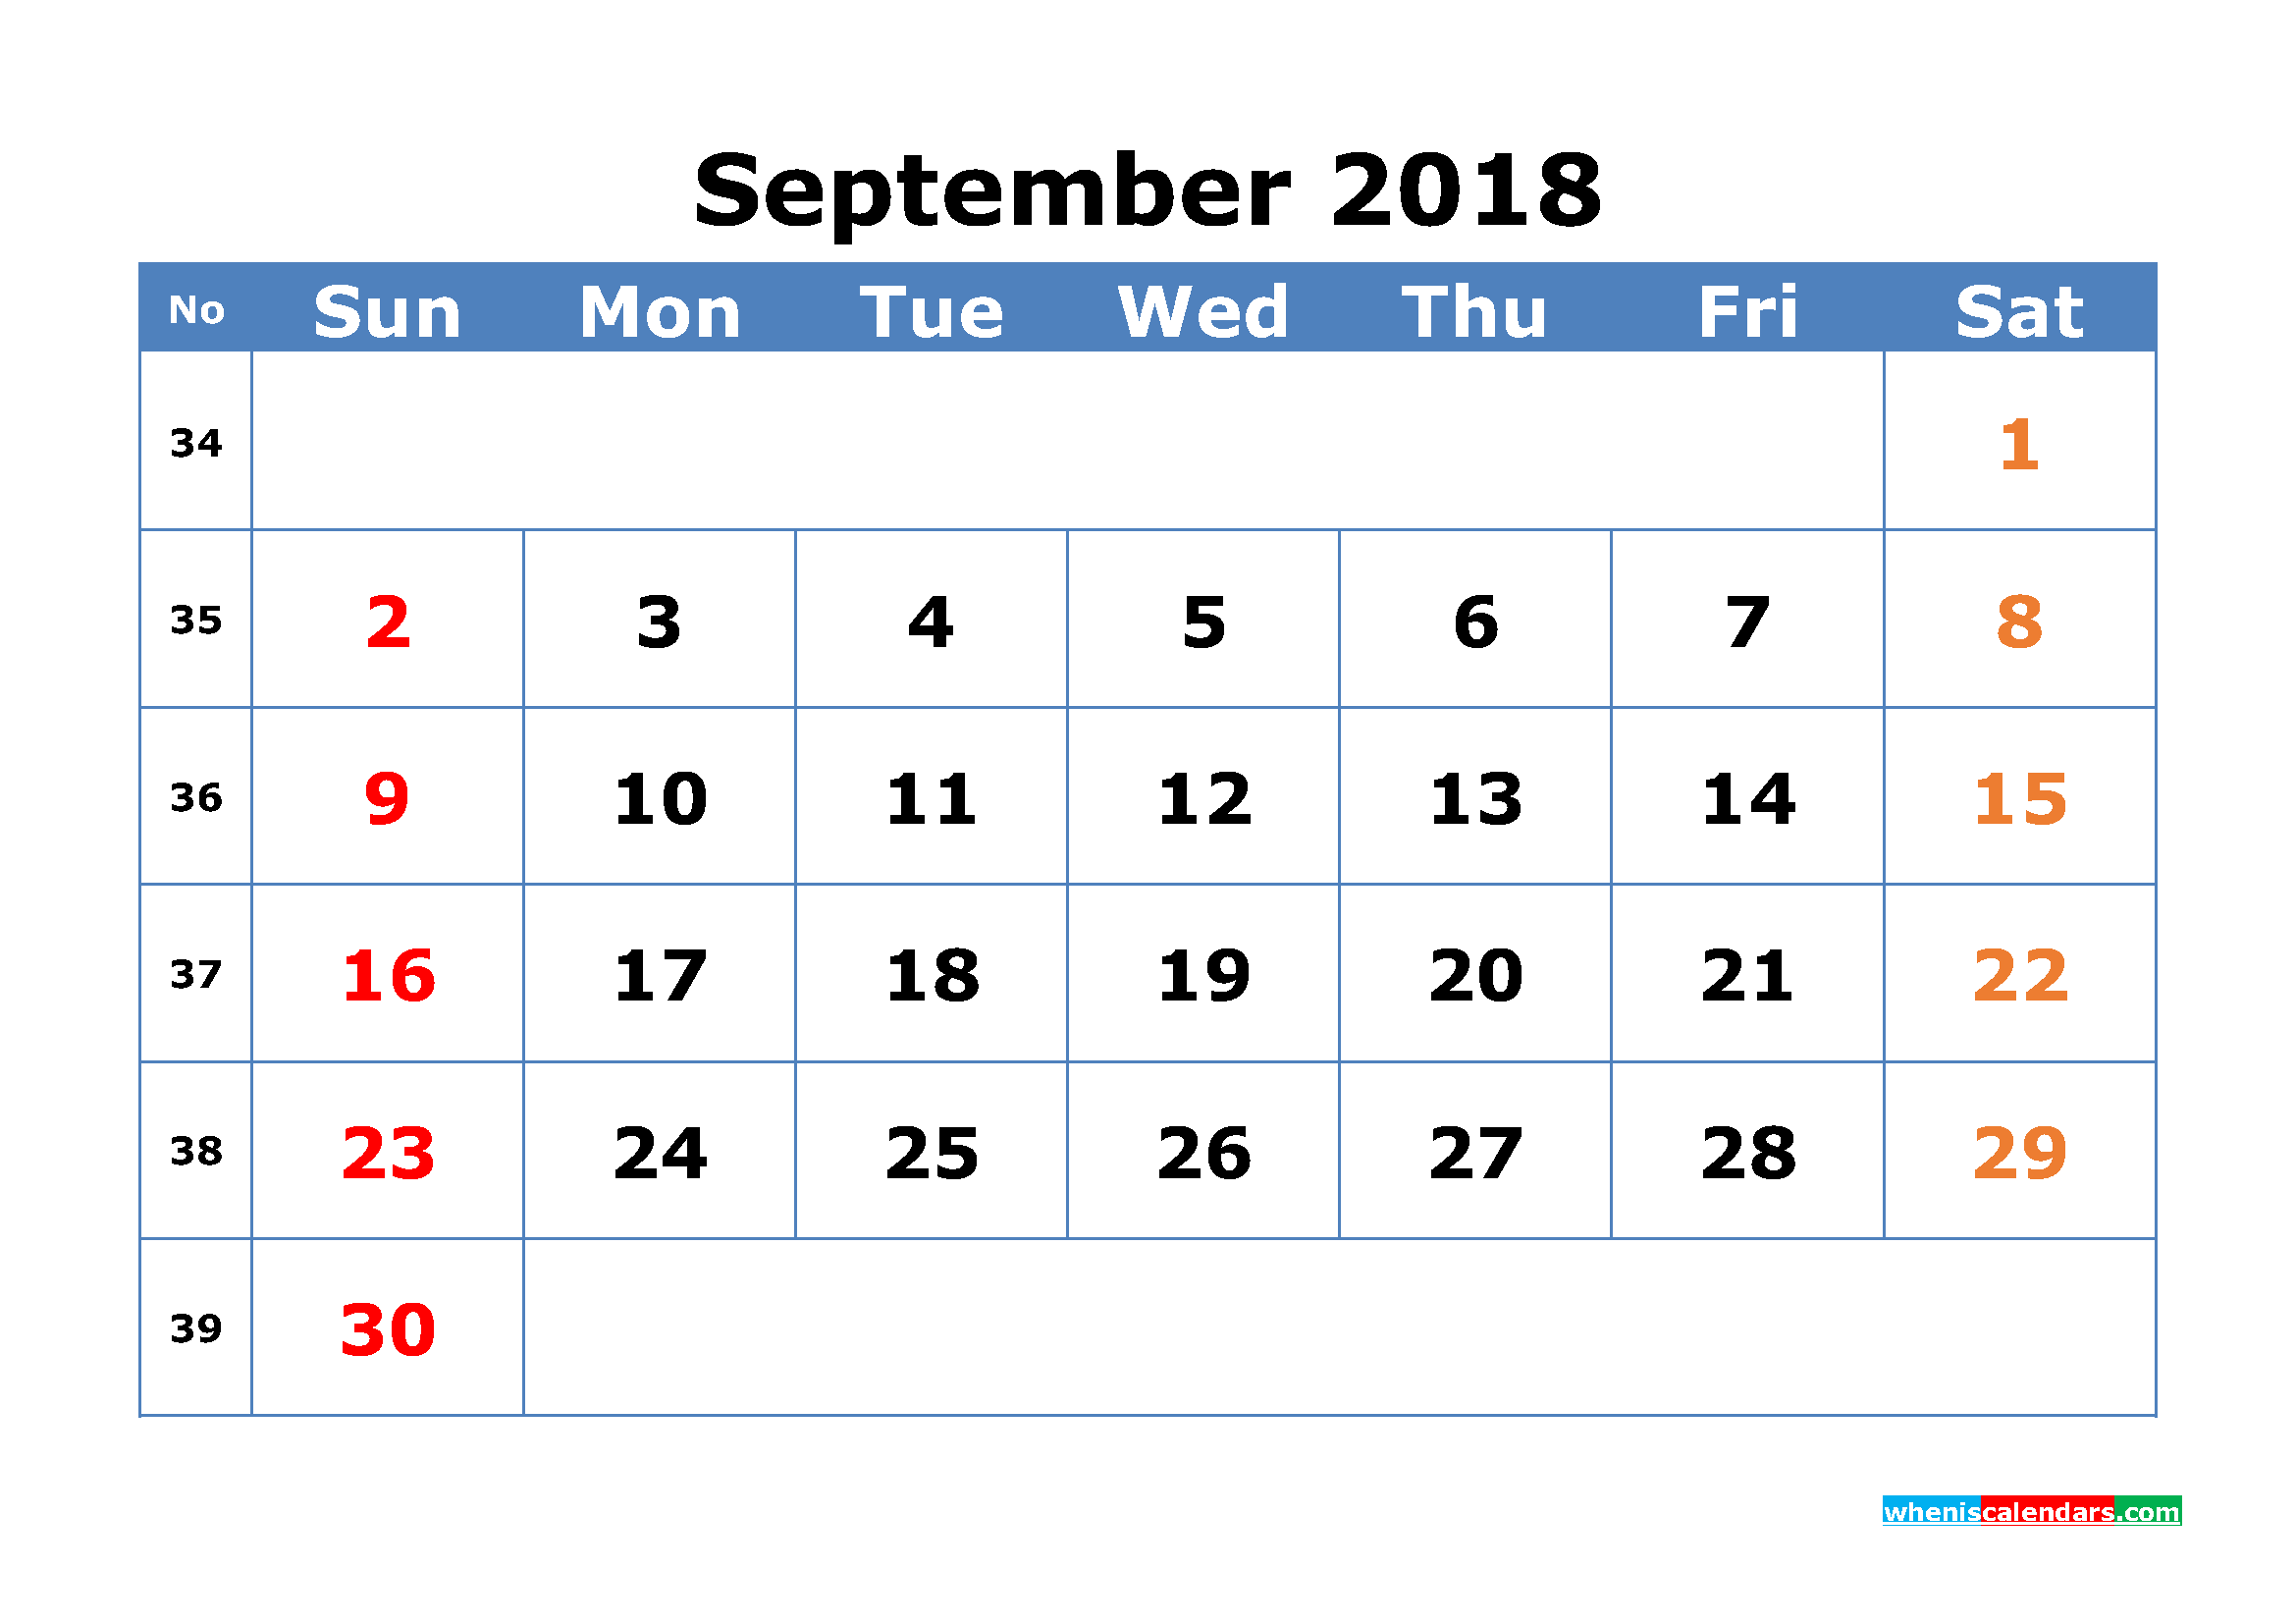 Printable Calendar September 2018 with Week Numbers Pdf, Image